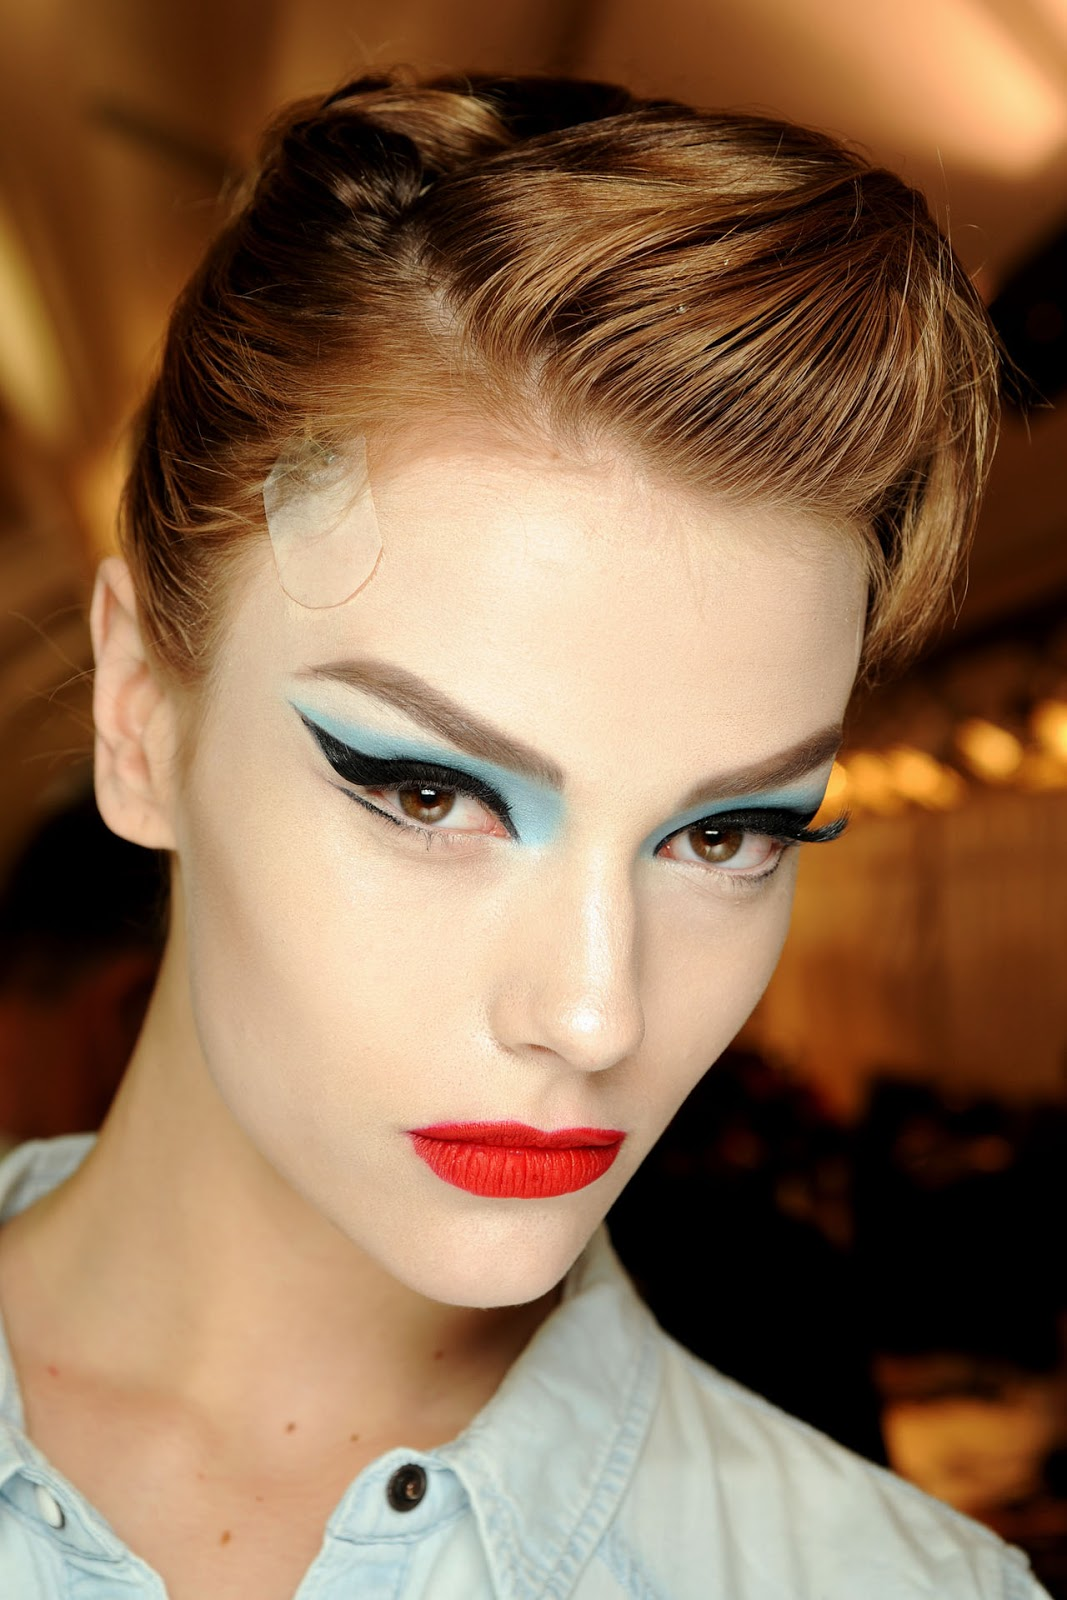 Make Up Lesson For Beginners: Elegance Makeups: Fashion And Catwalk Makeup